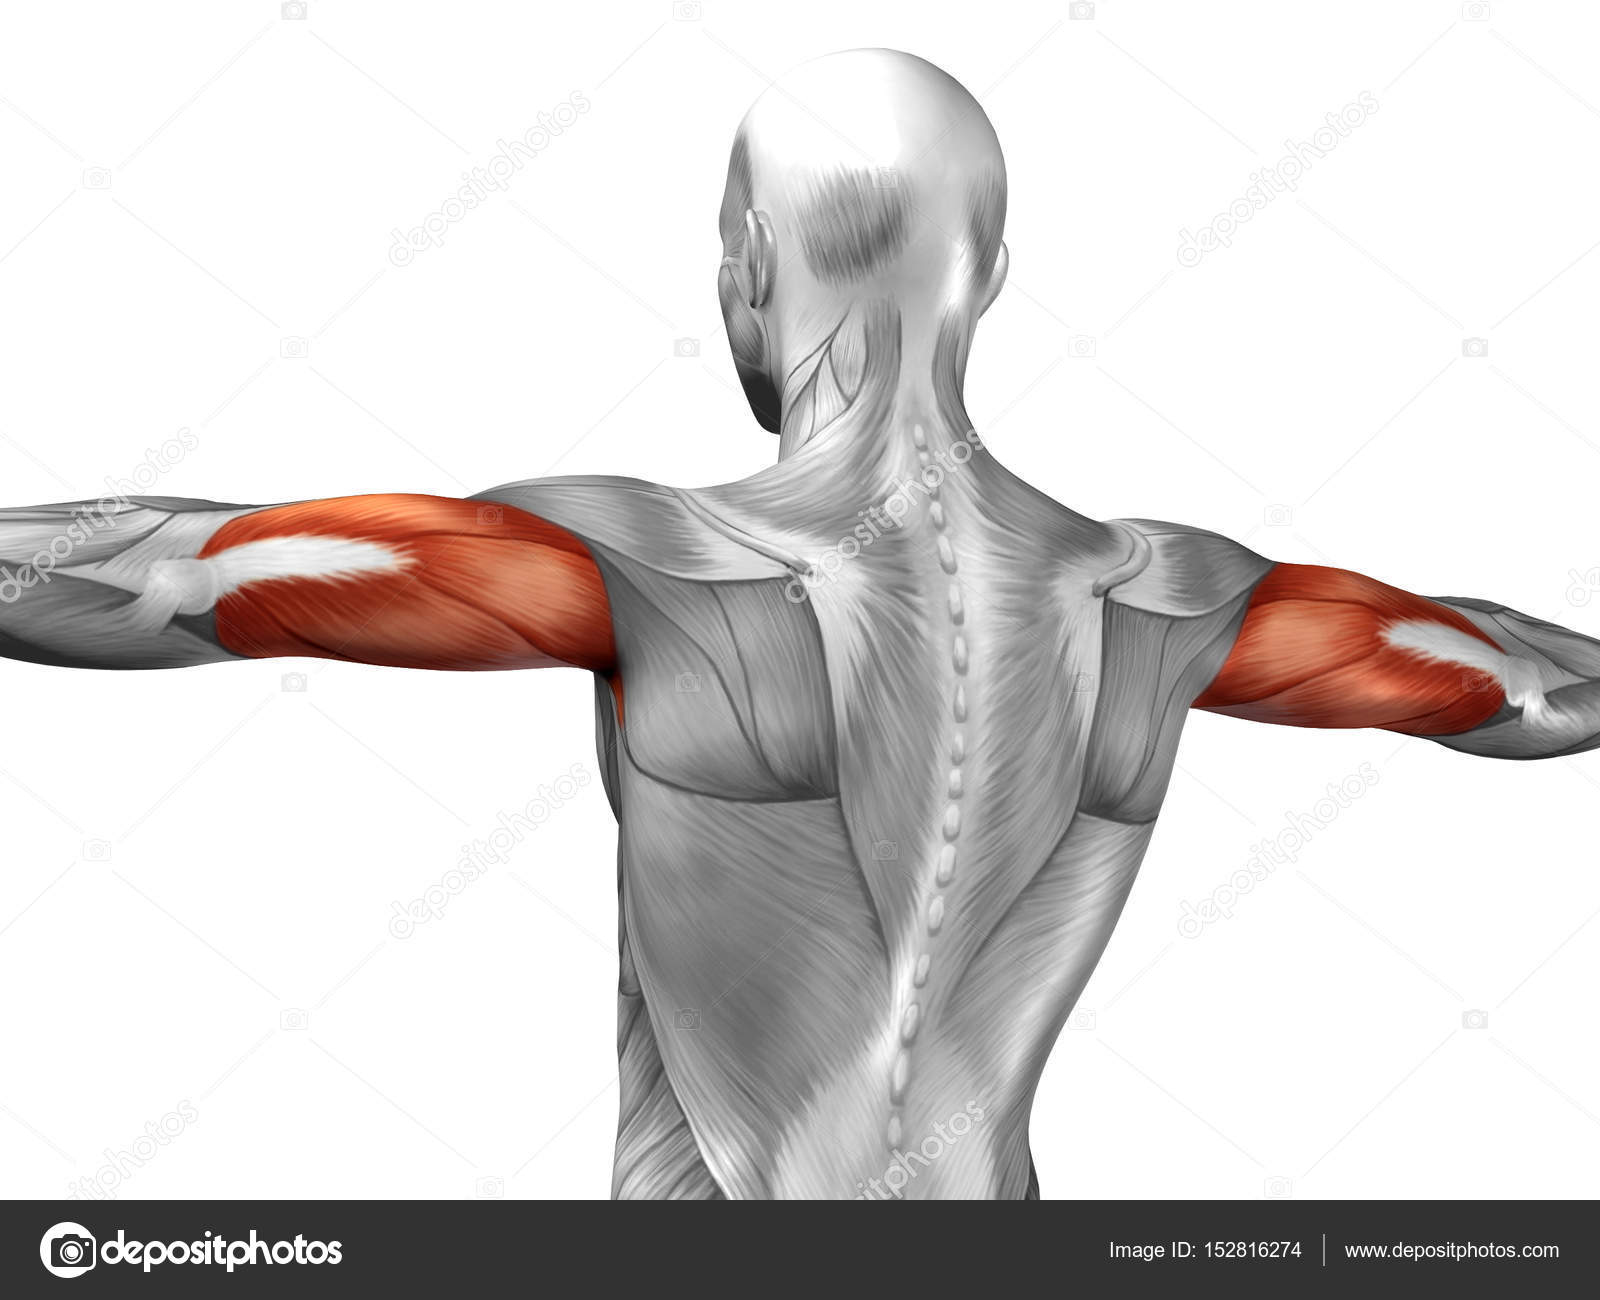 human triceps muscles anatomy — Stock Photo © design36 #152816274